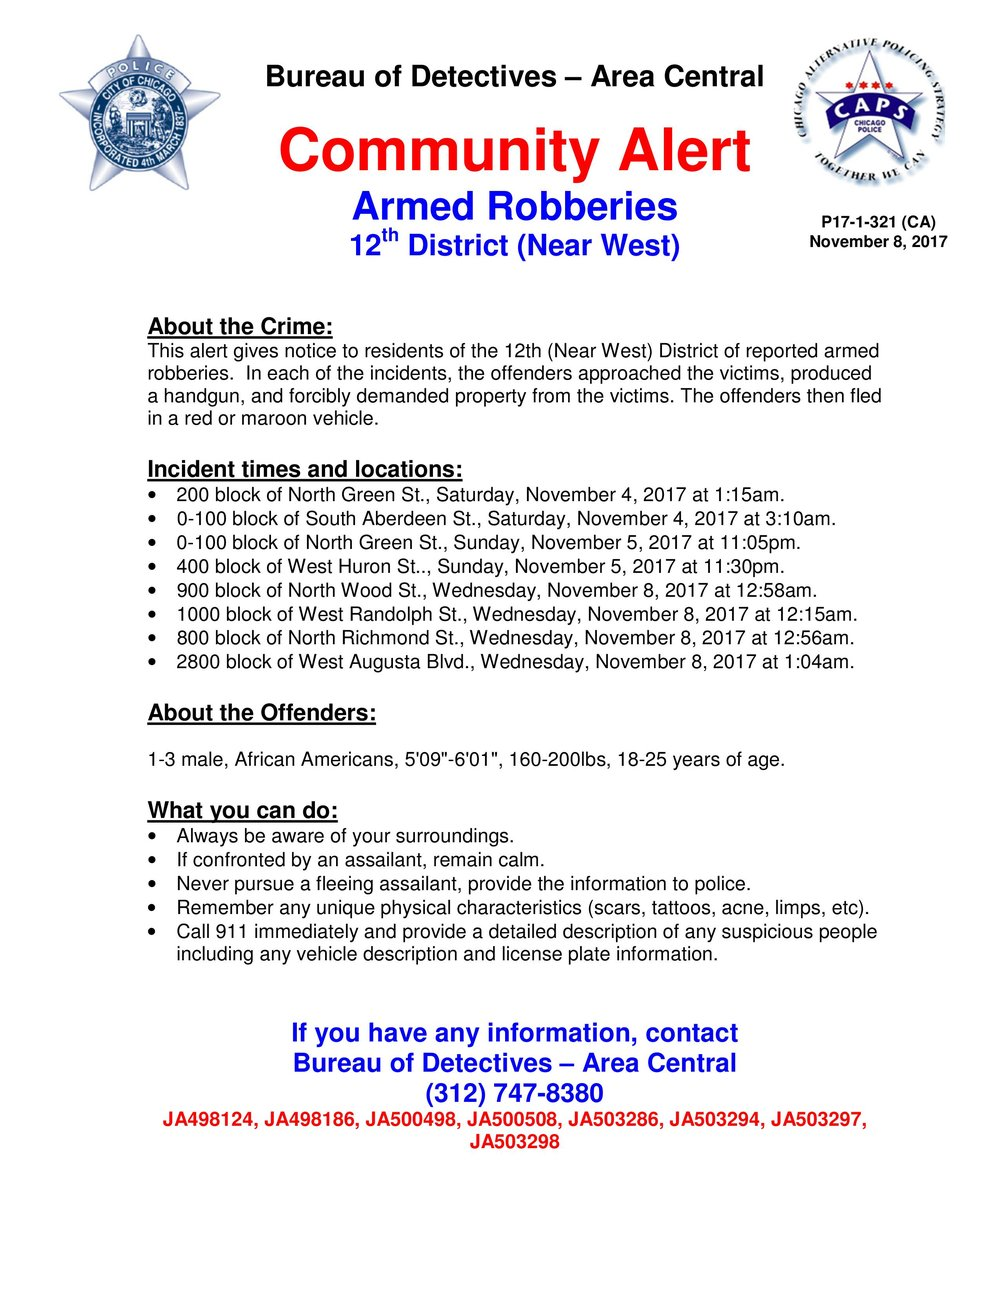 08Nov17 Community Alert-12th District Armed Robberies (1).jpg